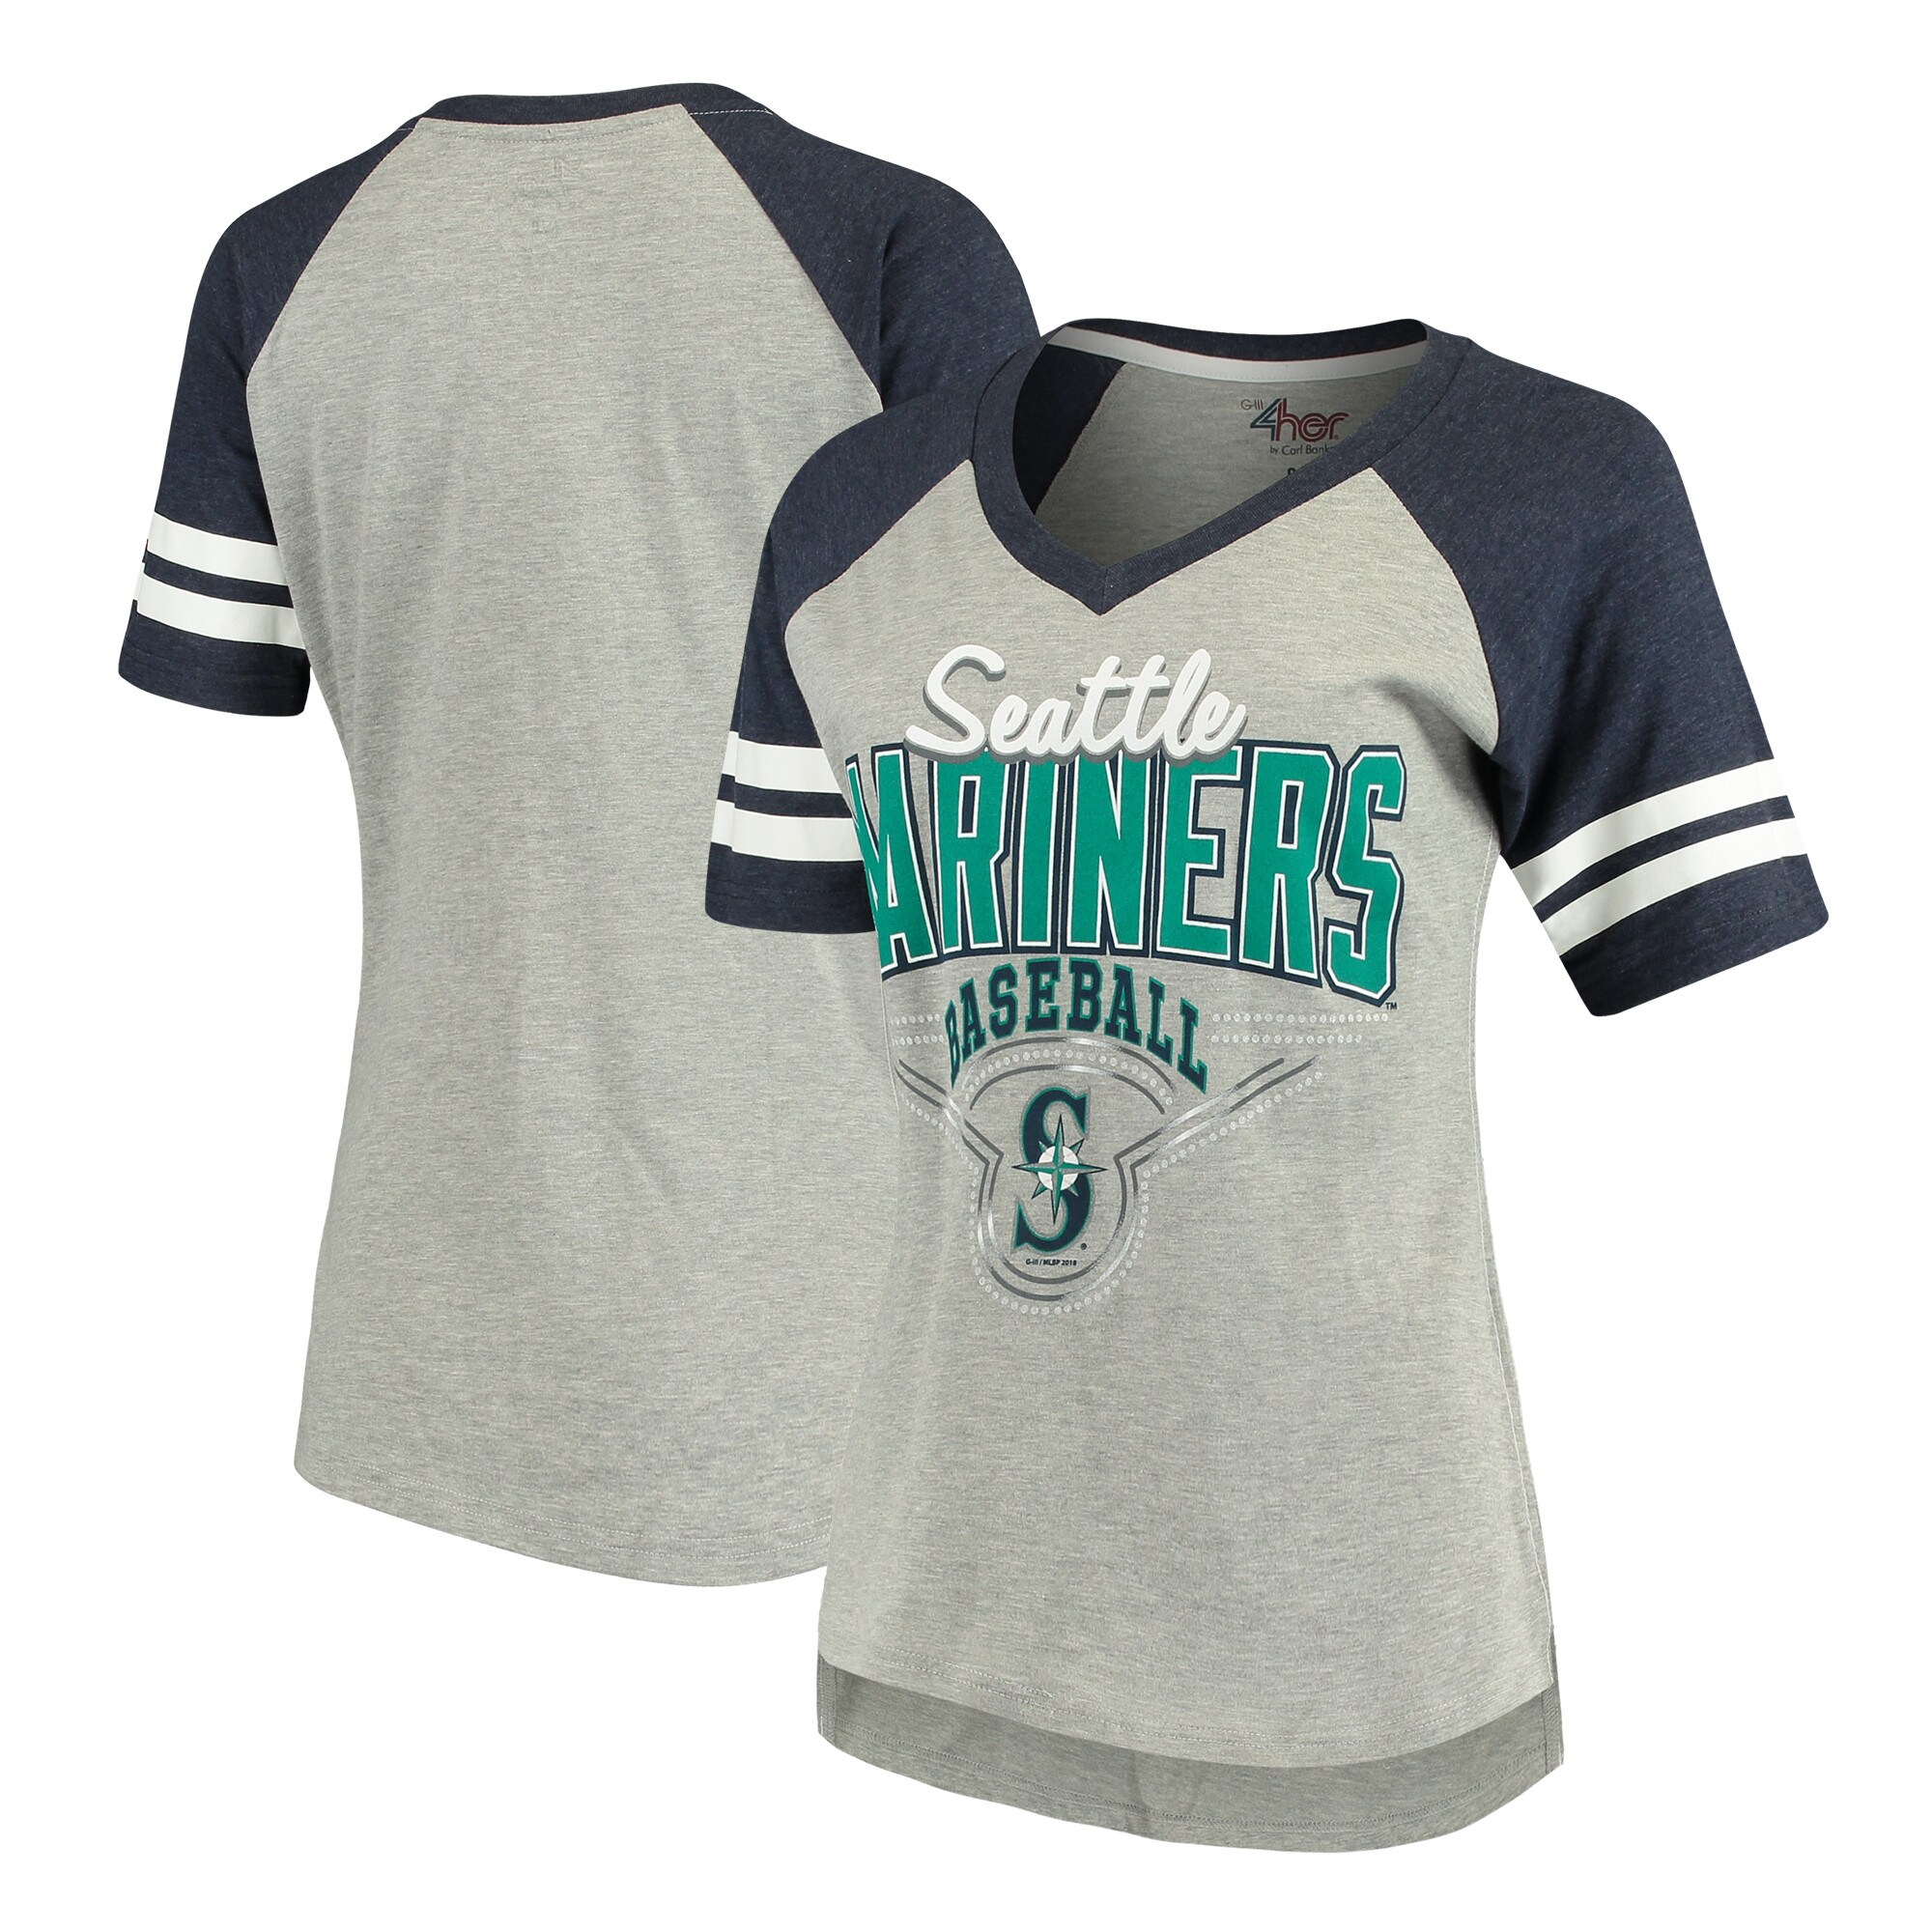 Seattle Mariners G-III 4Her by Carl Banks Women's Goal Line T-Shirt - Heathered Gray/Navy